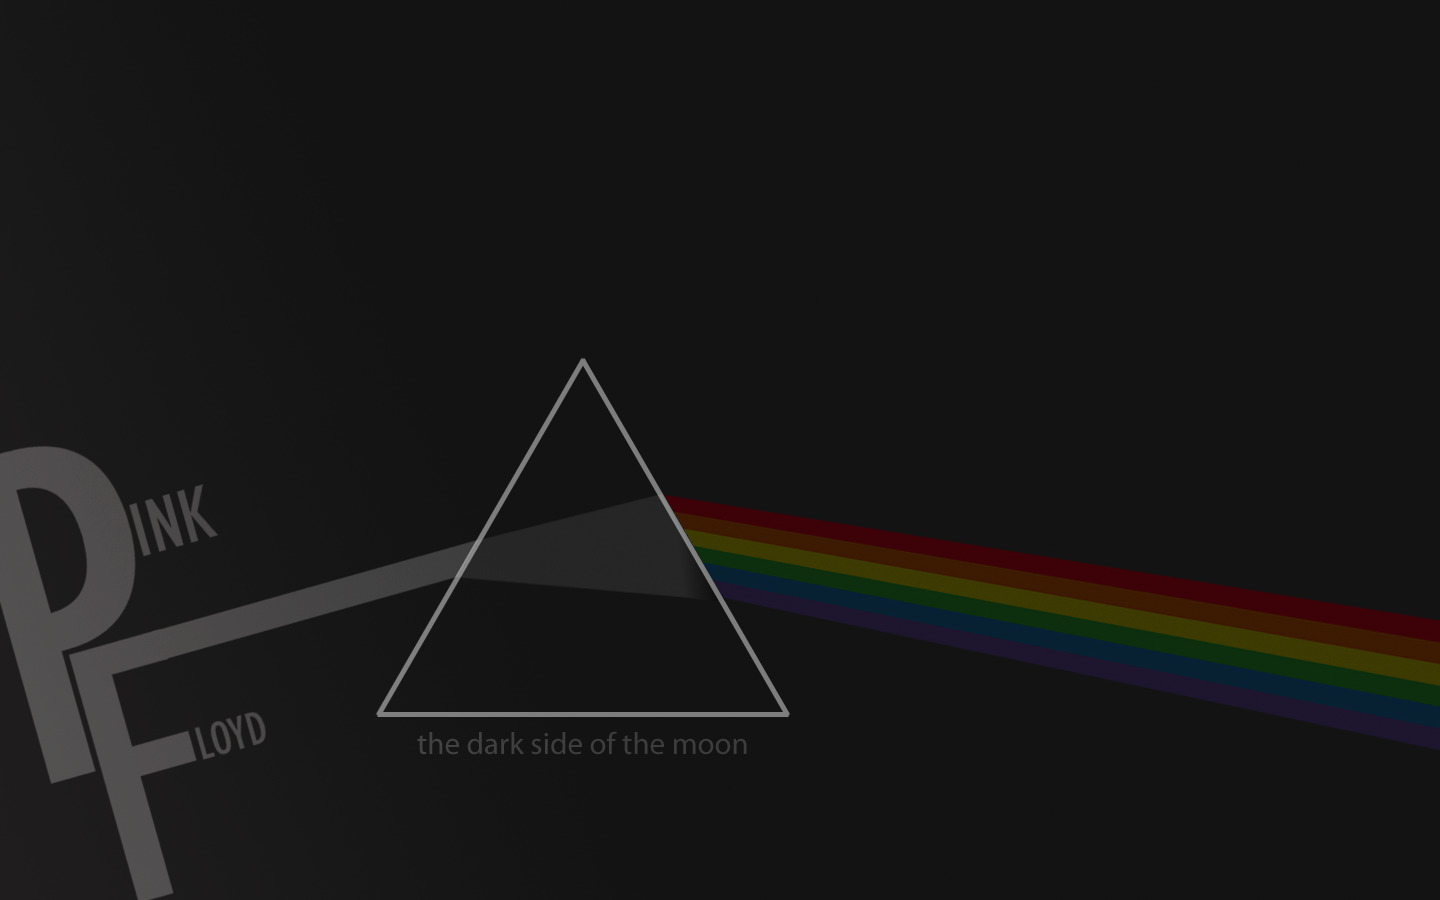 Music pink floyd prism HD Wallpaper